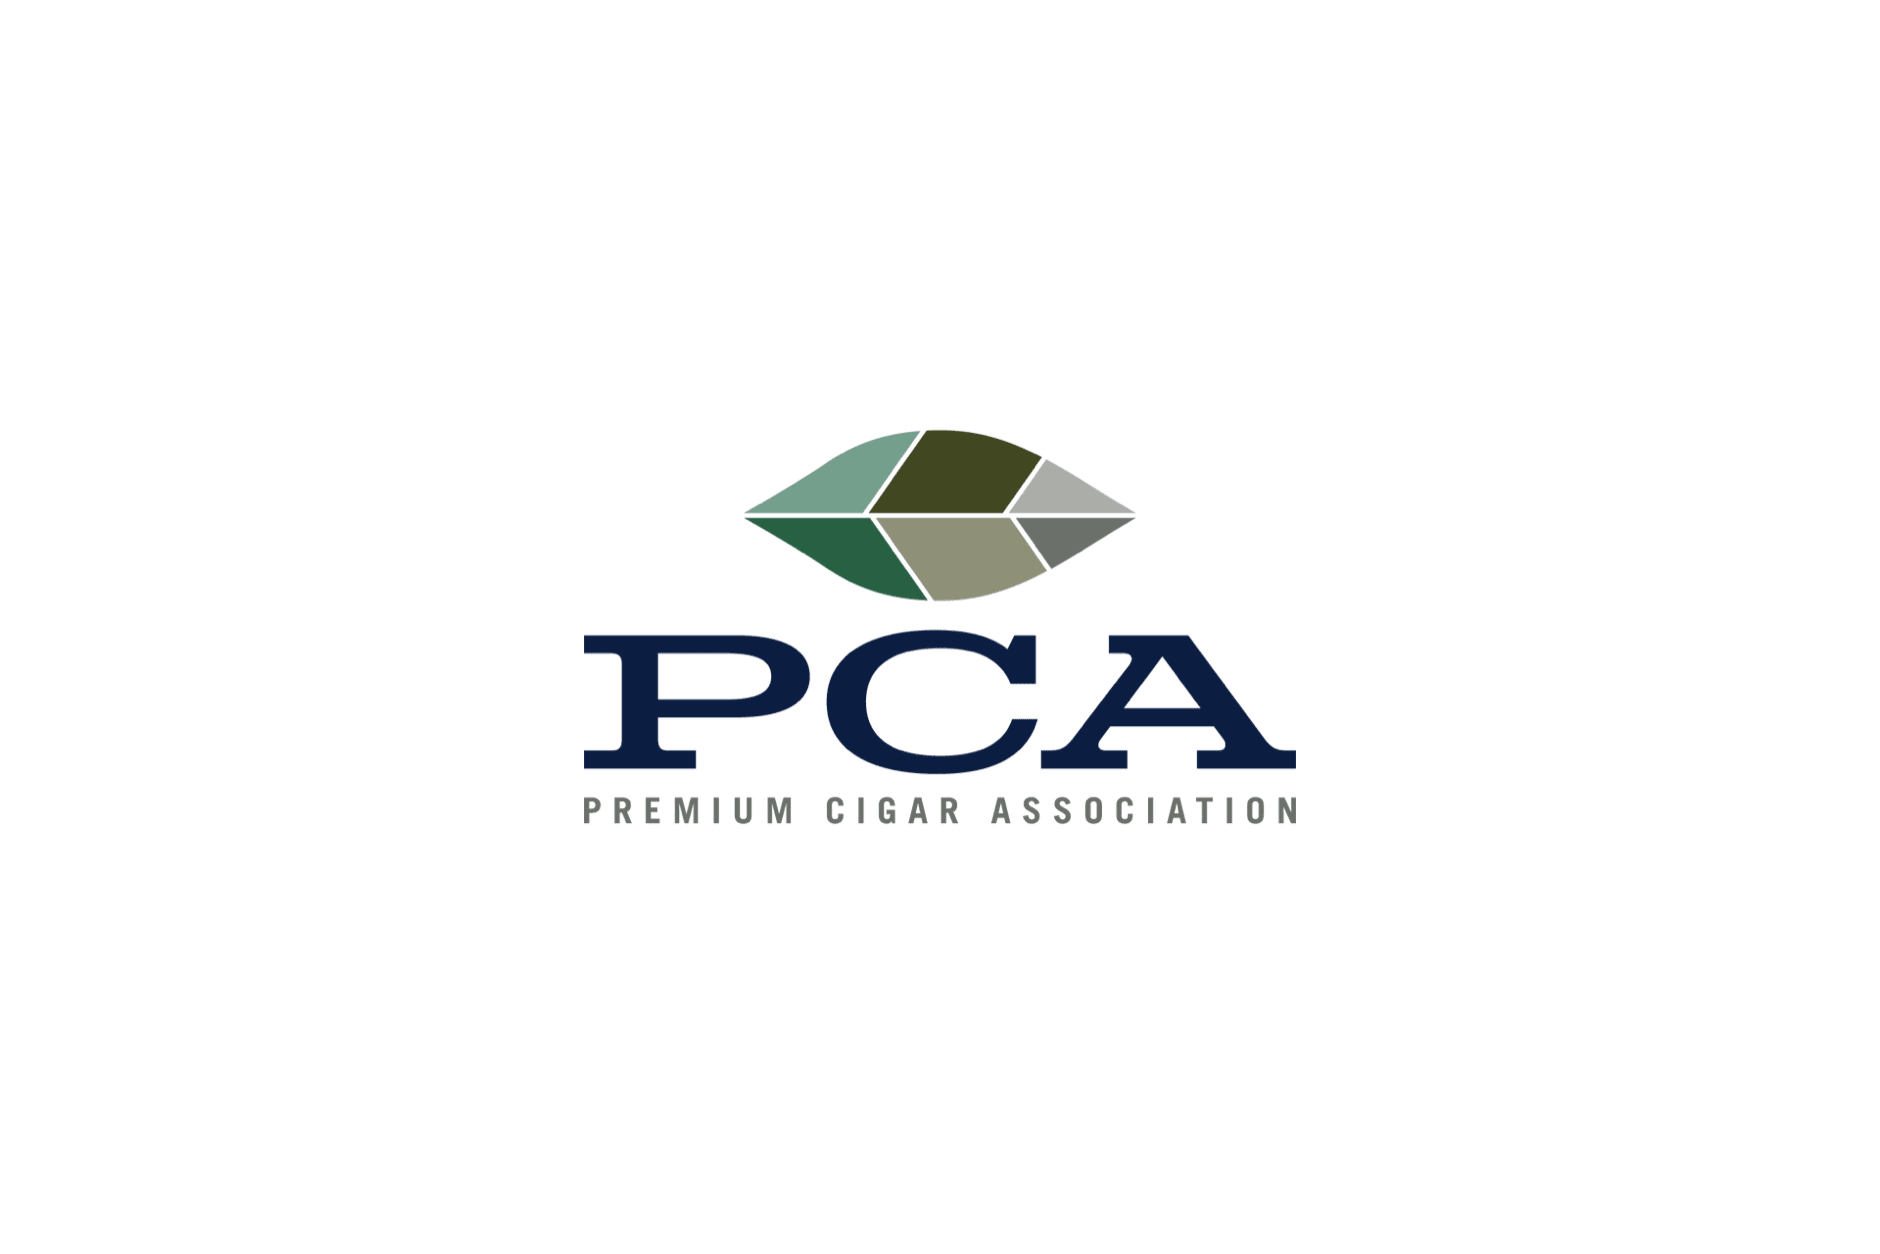 Premium Cigar Association Furloughs Staff, Ends Lobbying Contracts Featured Image